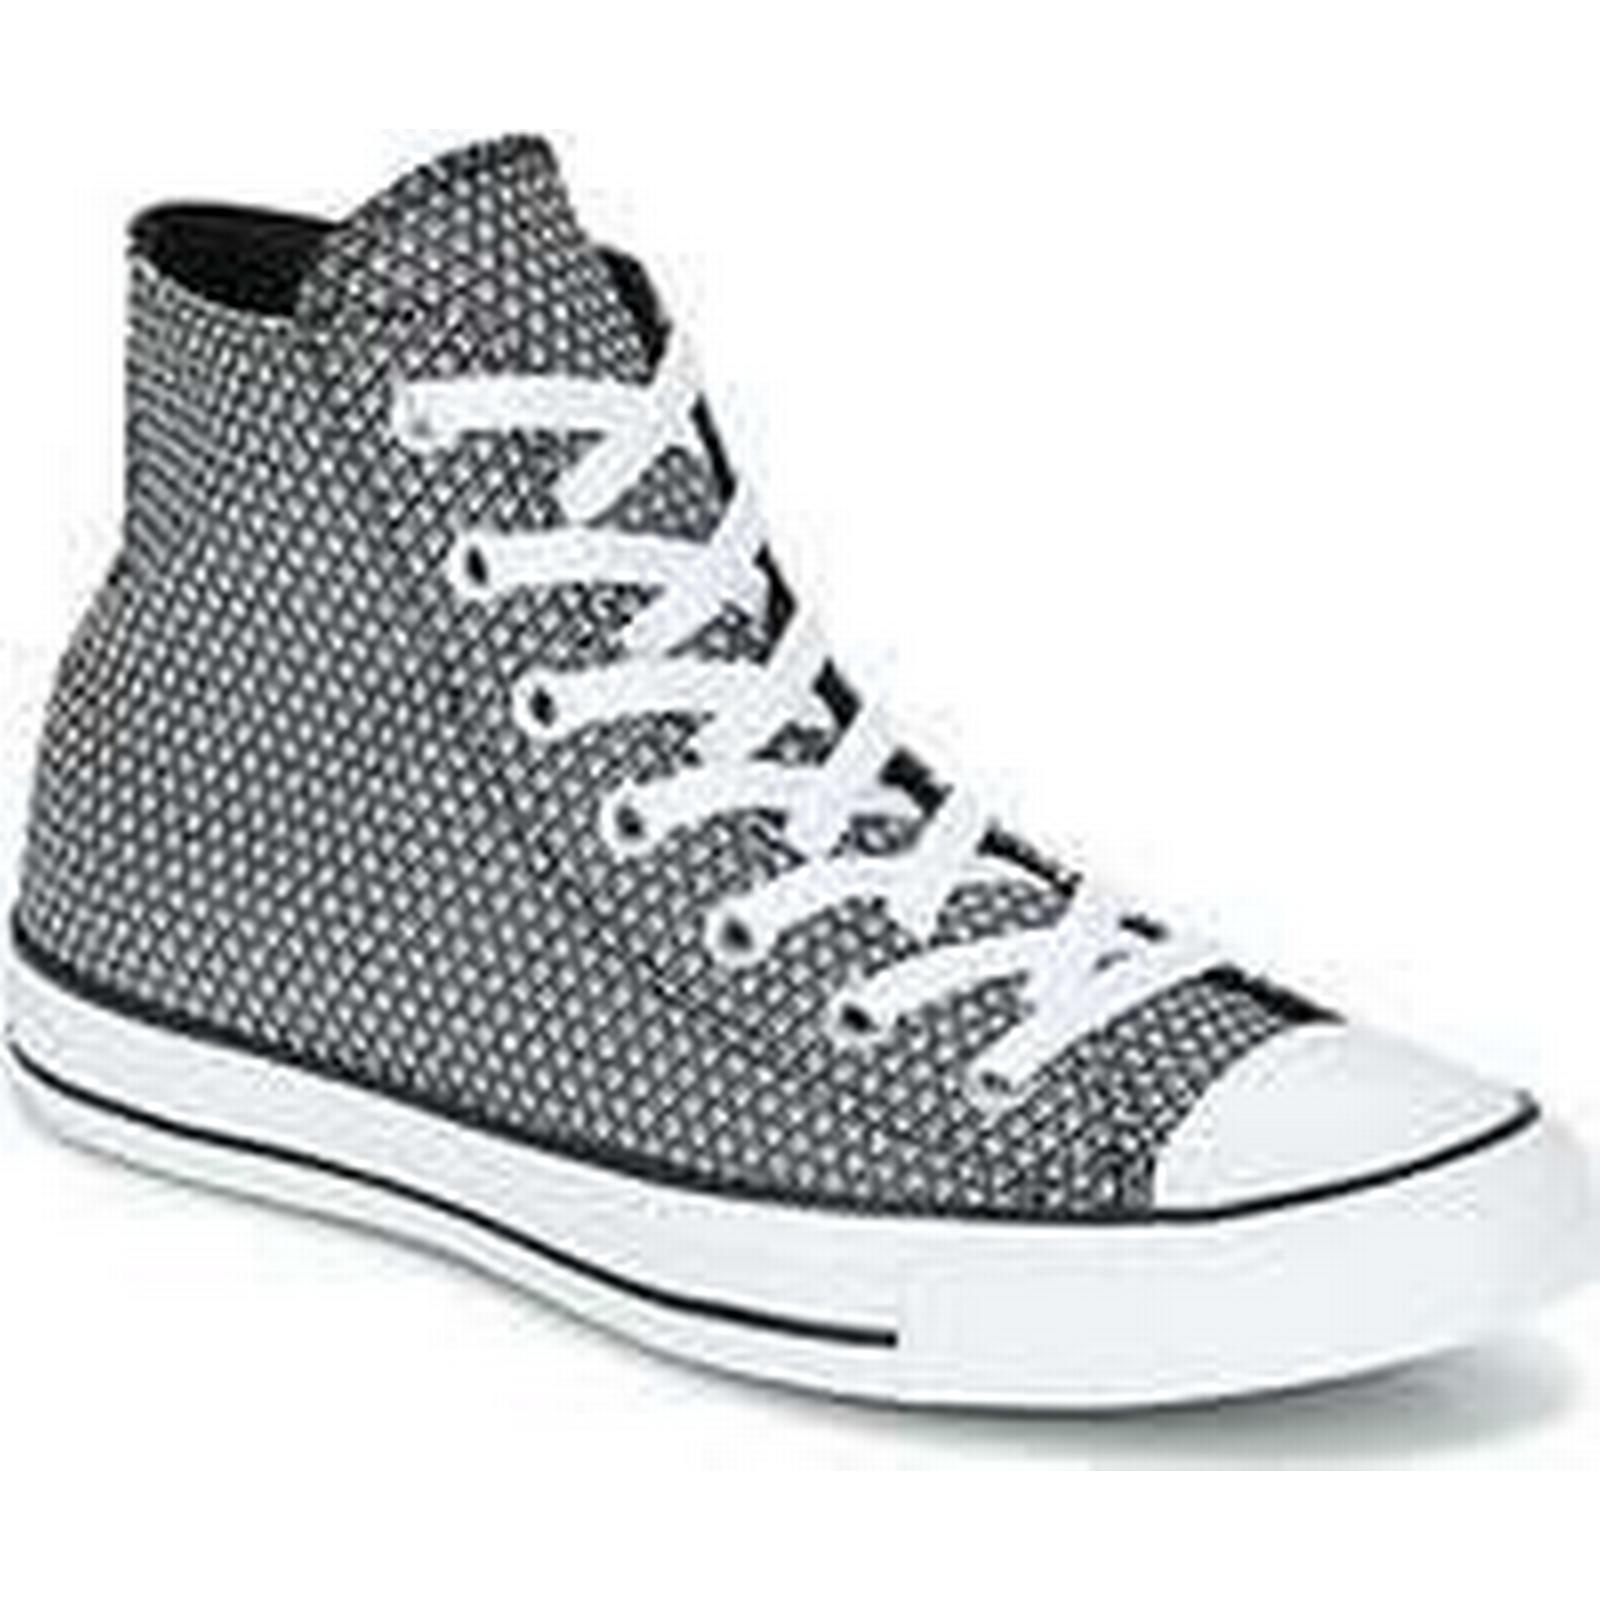 Spartoo.co.uk Converse - CHUCK TAYLOR ALL STAR - Converse HI women's Shoes (High-top Trainers) in Black 2ae138